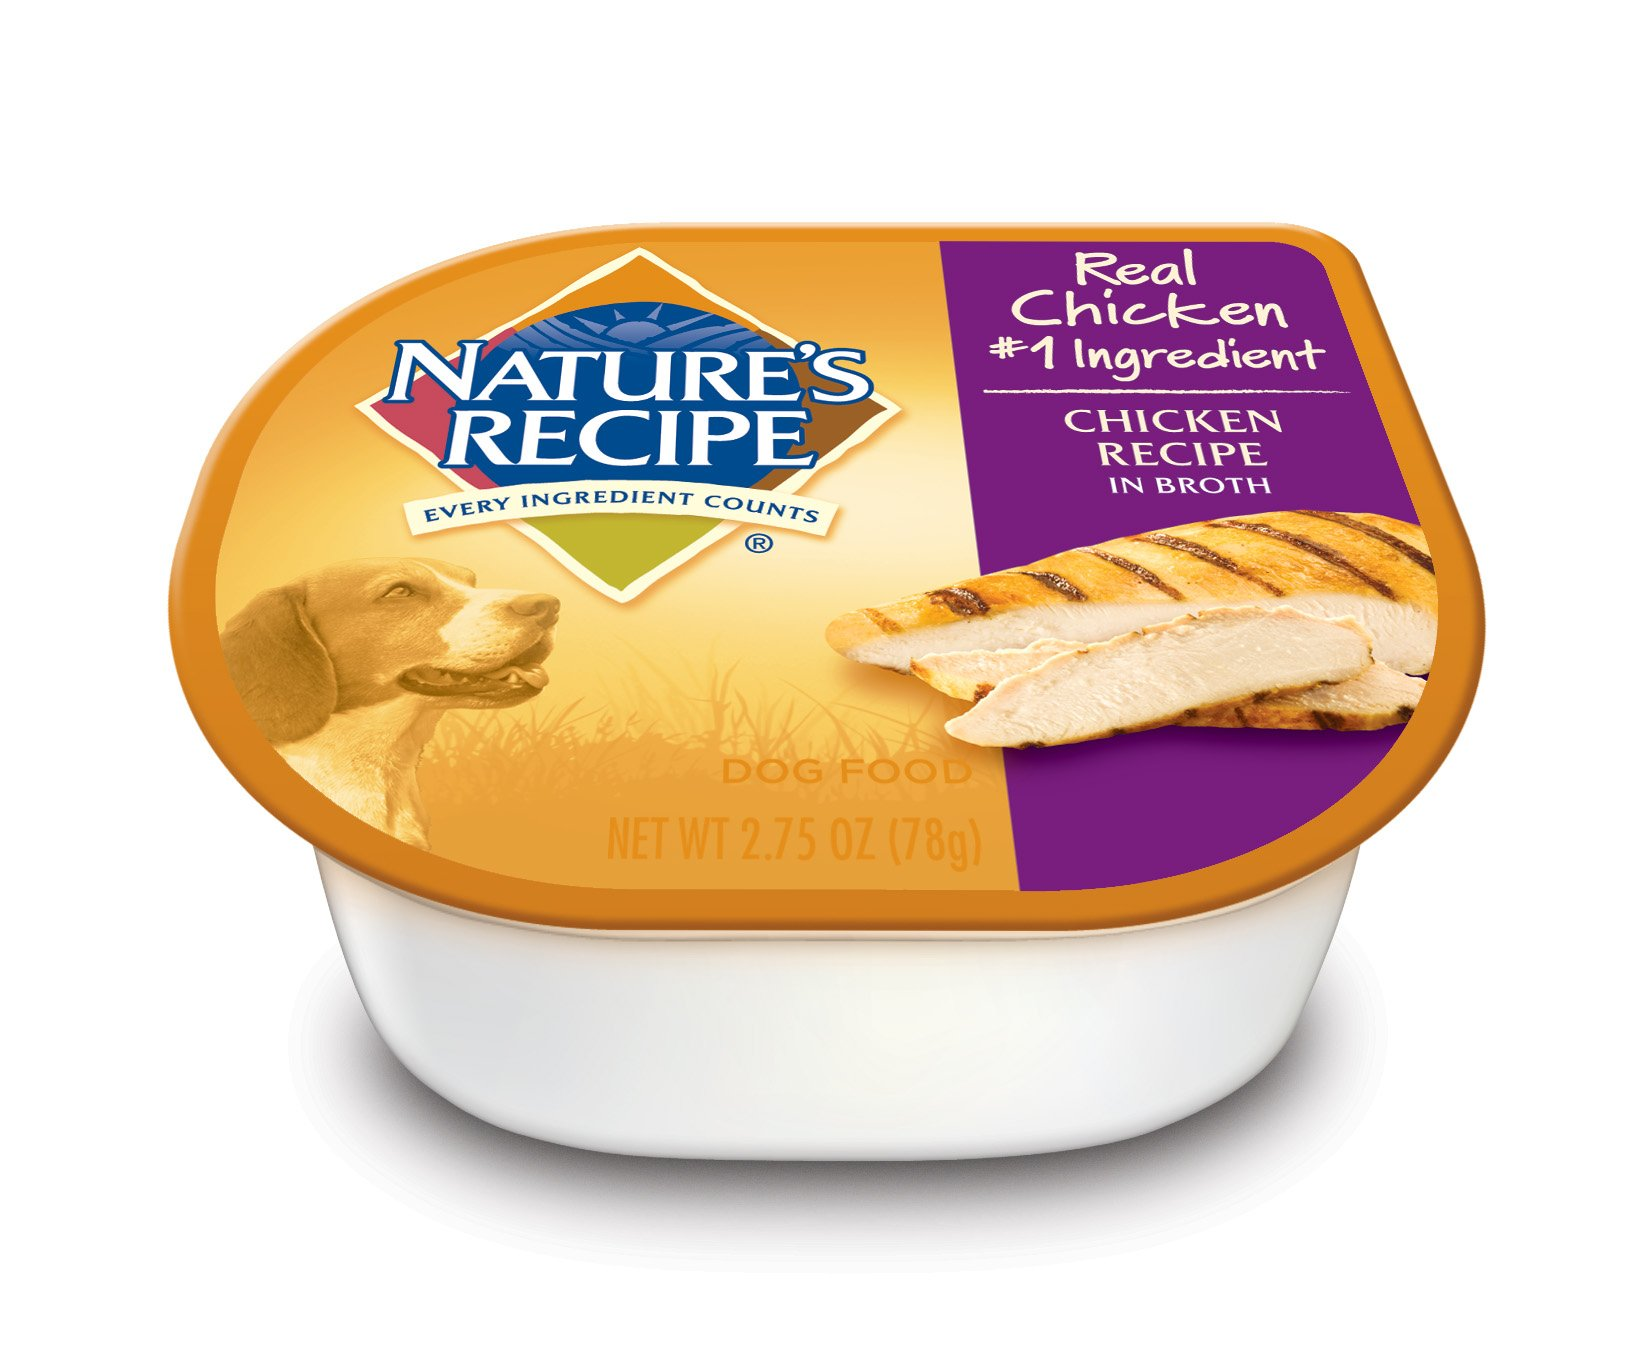 Nature's Recipe Wet Dog Food, Chicken Recipe In Broth, 2.75-Ounce Cup (Pack of 24) by Nature's Recipe